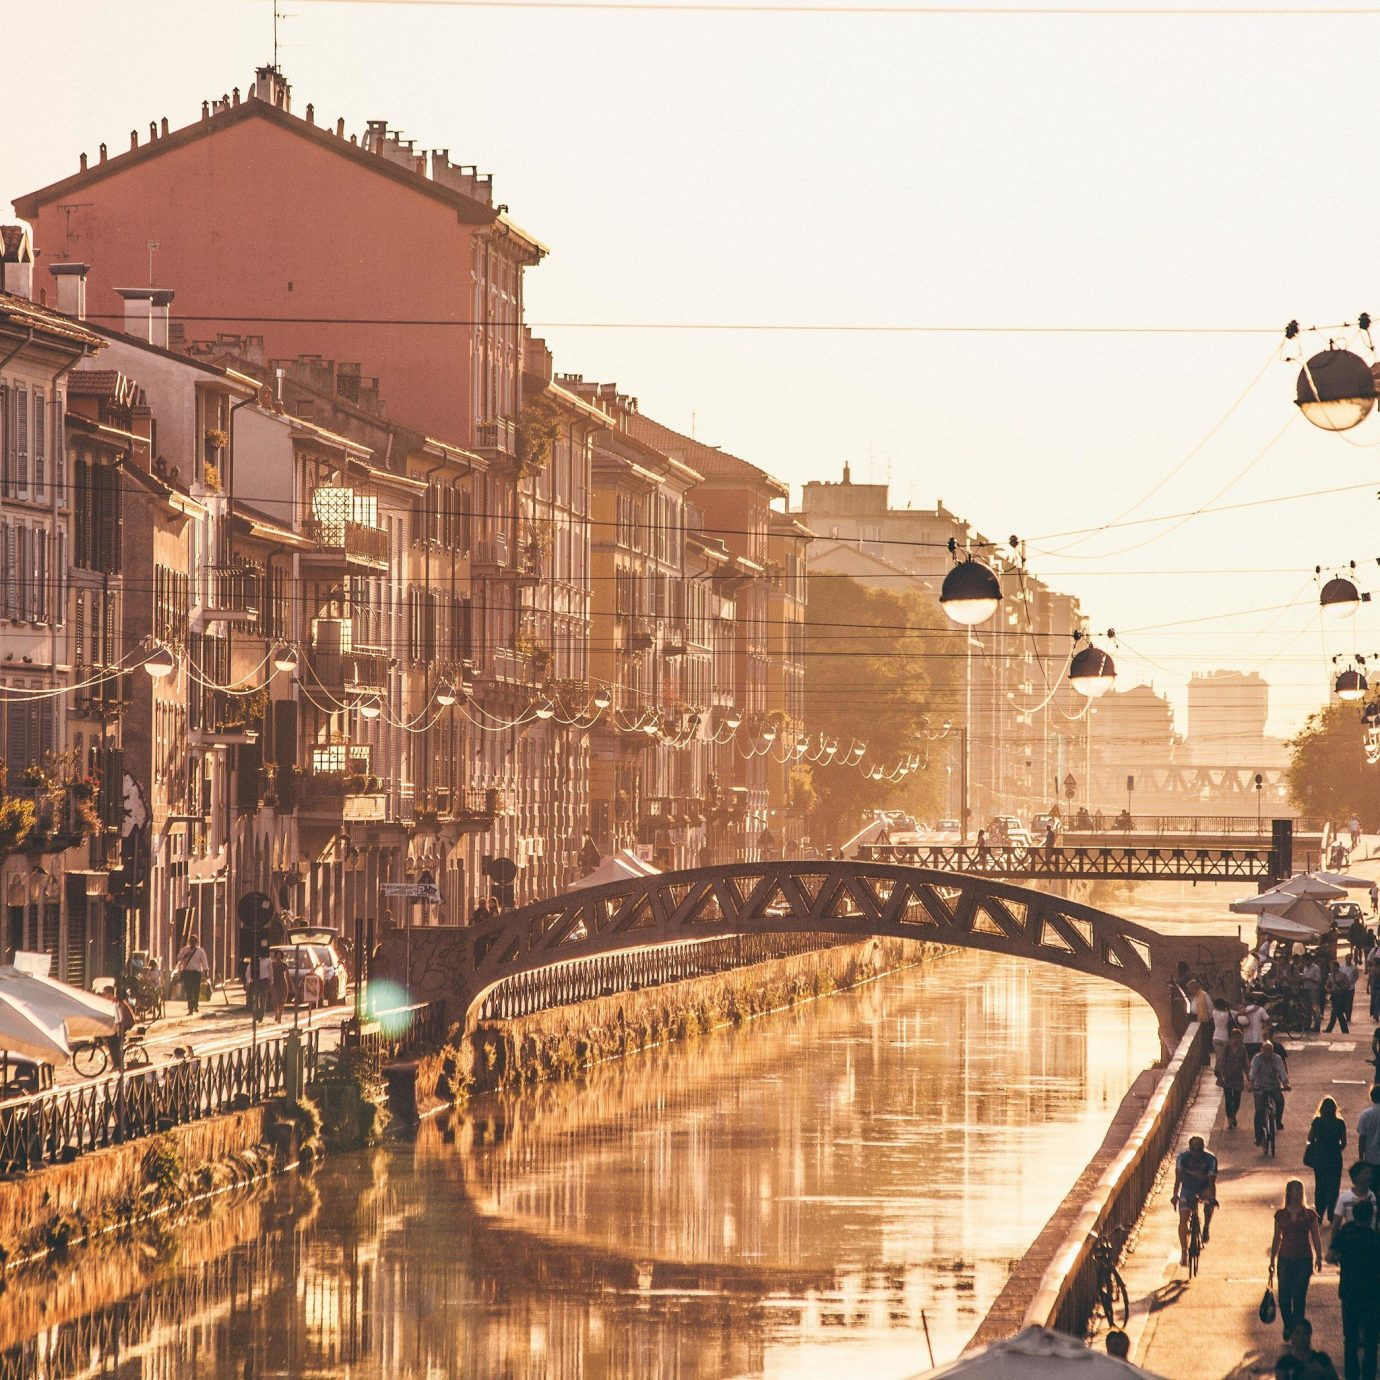 Arts + Culture Italy Milan waterway Town reflection body of water City water urban area Canal sky street neighbourhood cityscape morning evening metropolis building road channel River facade tree